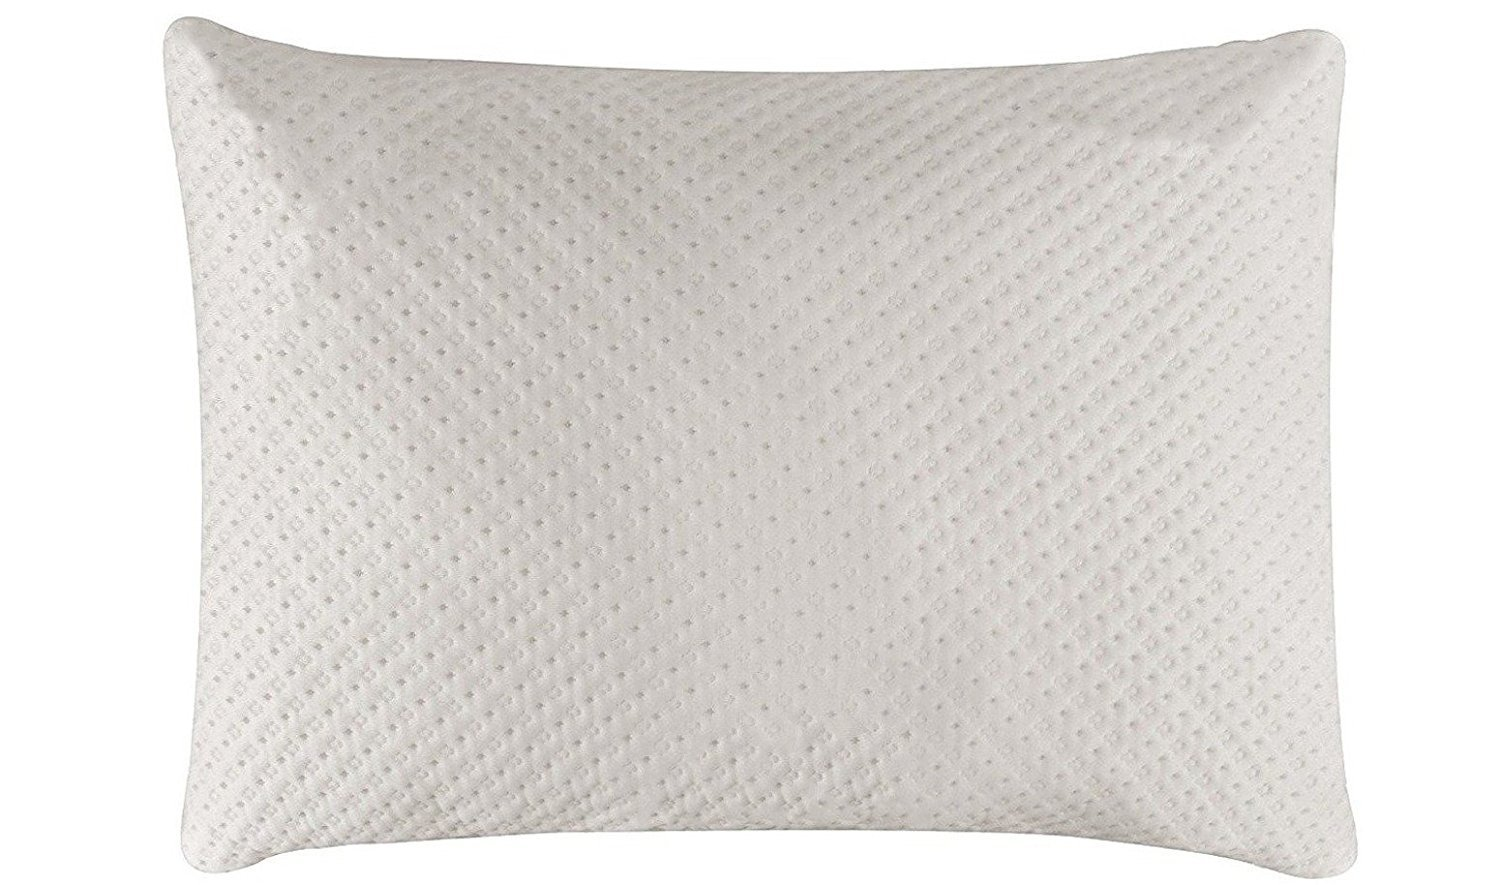 Premium Shredded Memory Foam Touch Comfort Pillow - Queen/Standard Size Bed Pillow - 23.6'' x 15.7''